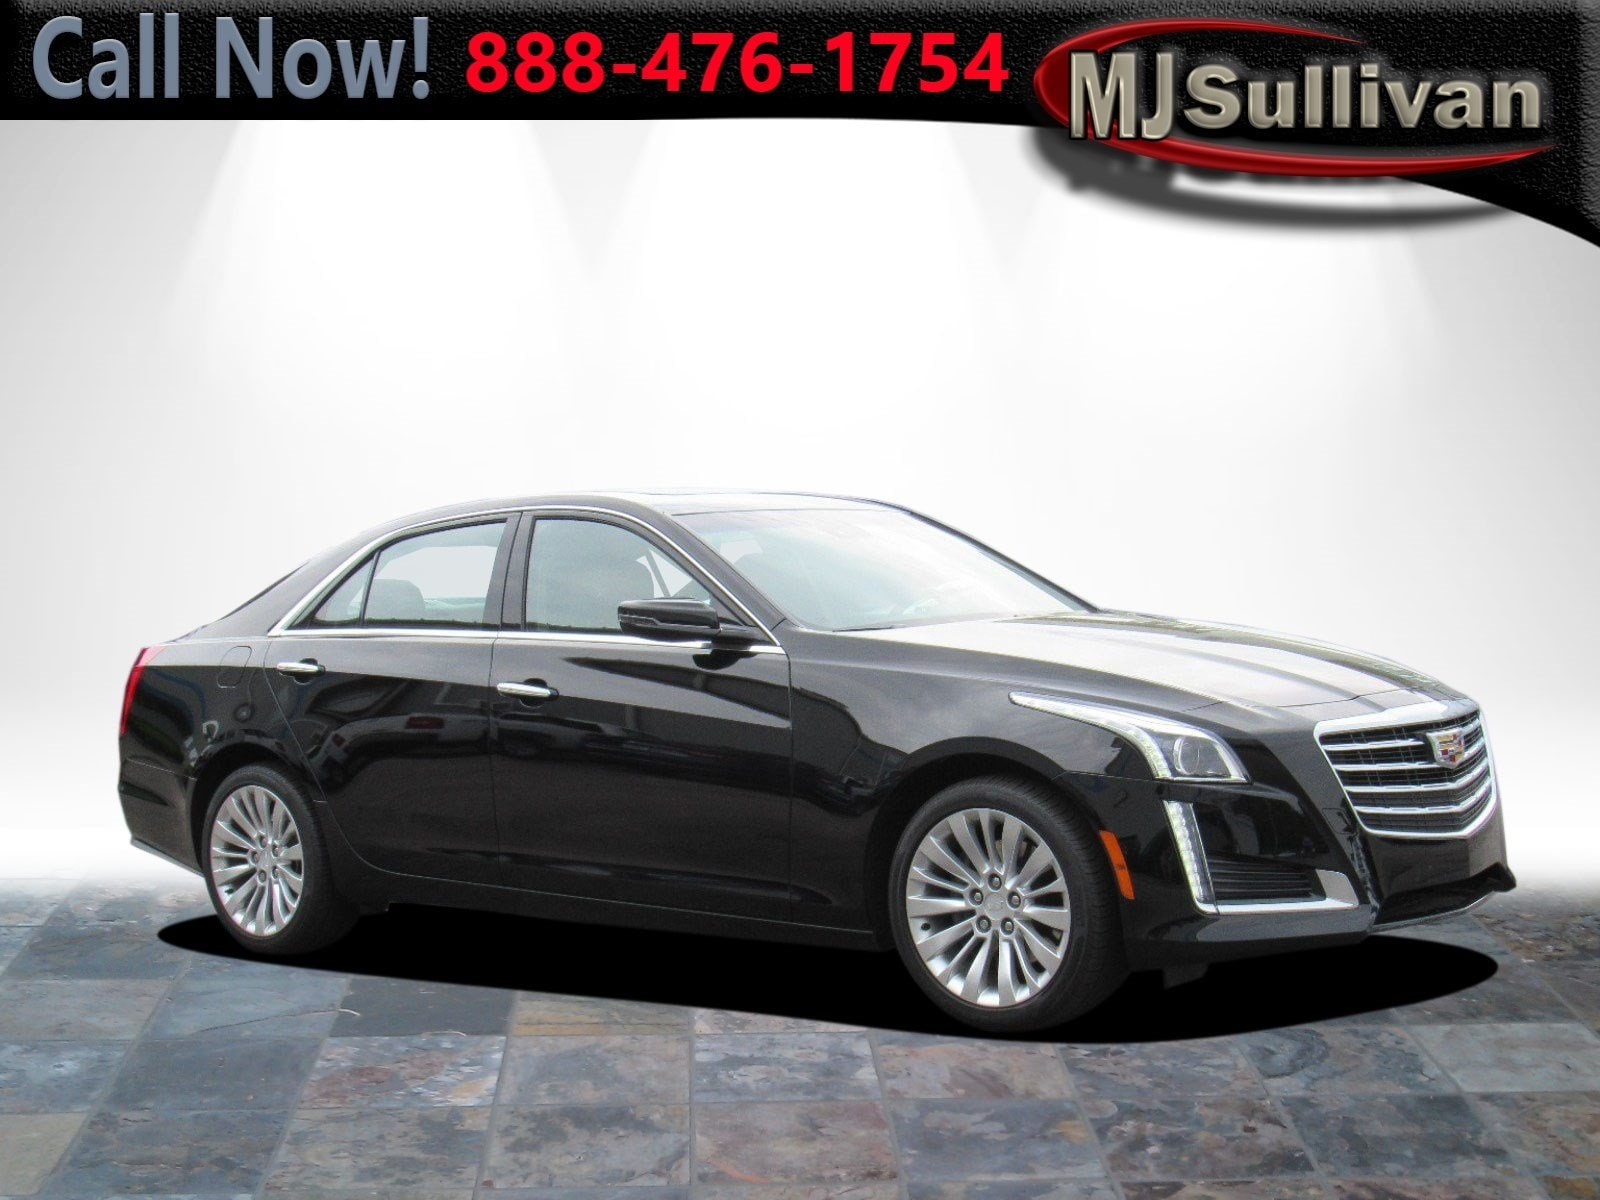 2019 CADILLAC CTS 3.6L Luxury Sedan New London Connecticut